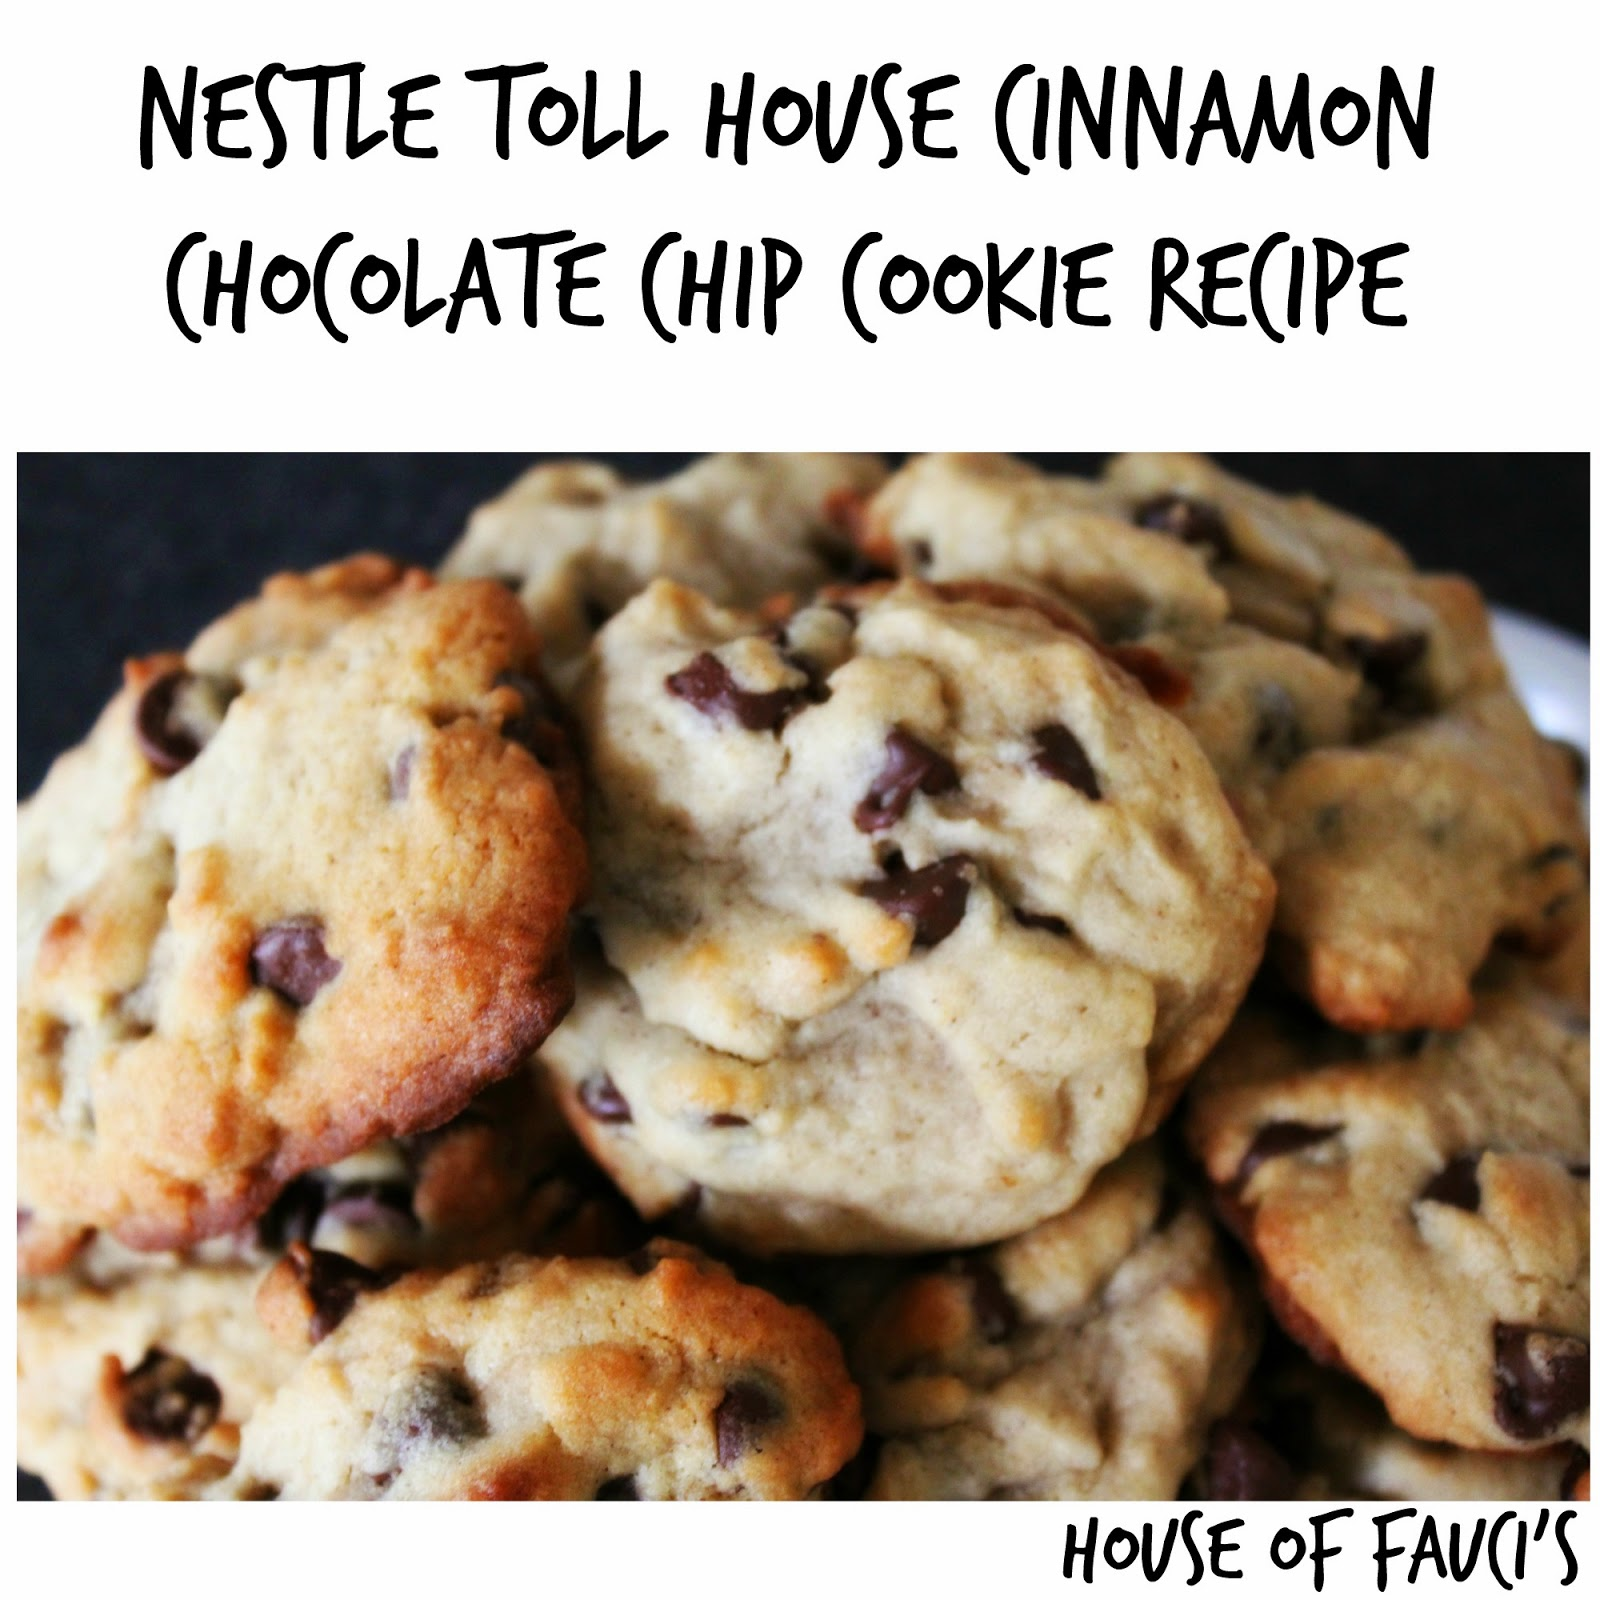 House of Fauci's: Nestle Toll House Cinnamon Chocolate Chip Cookie ...